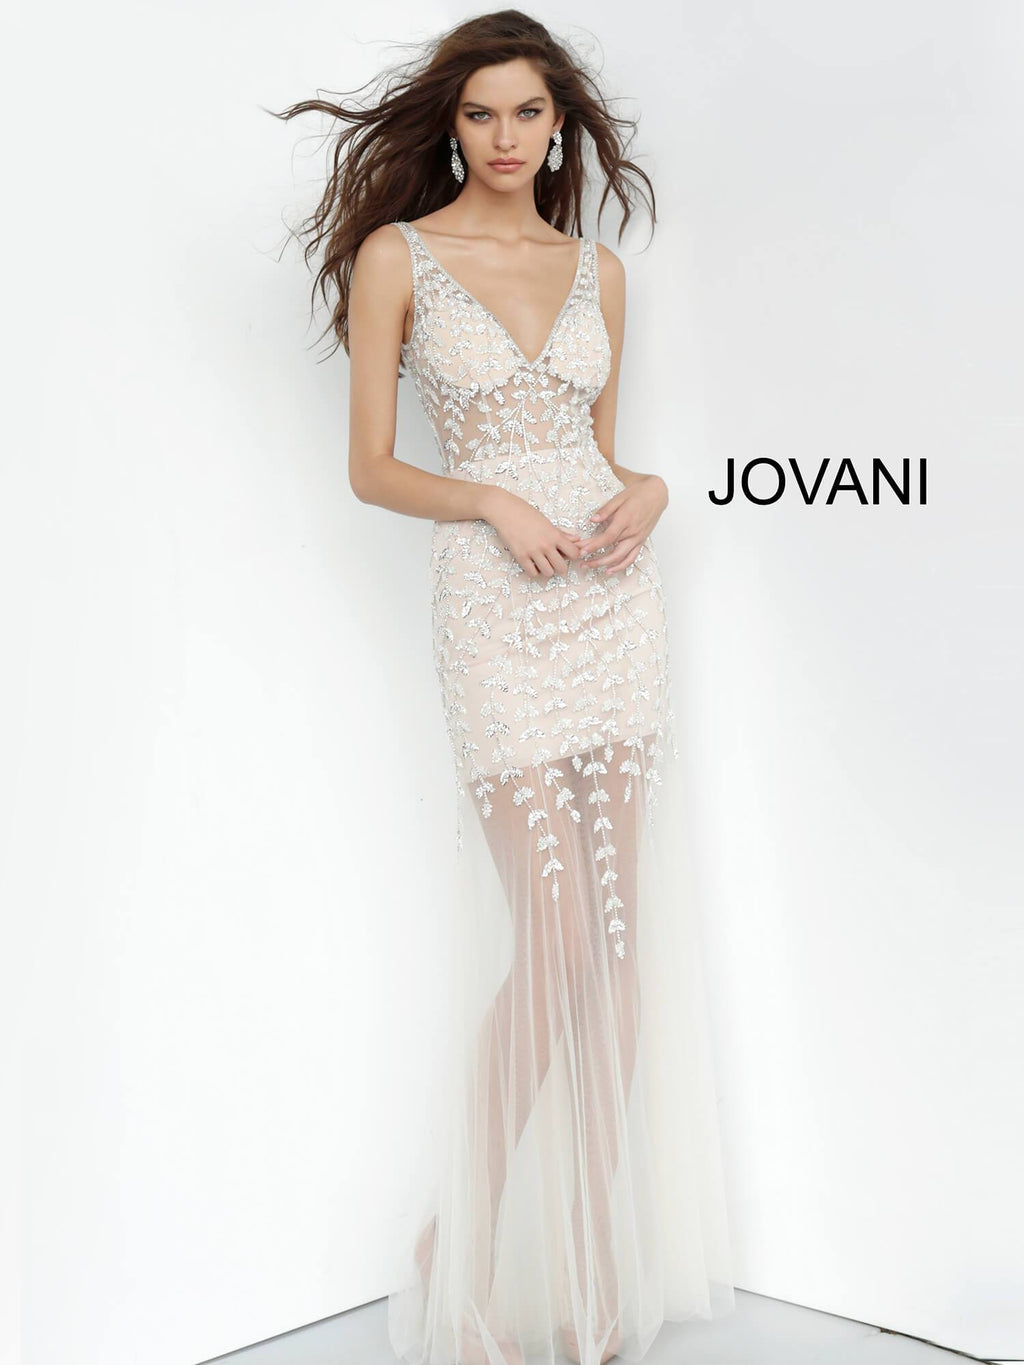 JOVANI 3959 Off White/Nude Beaded V-Neck Evening Dress